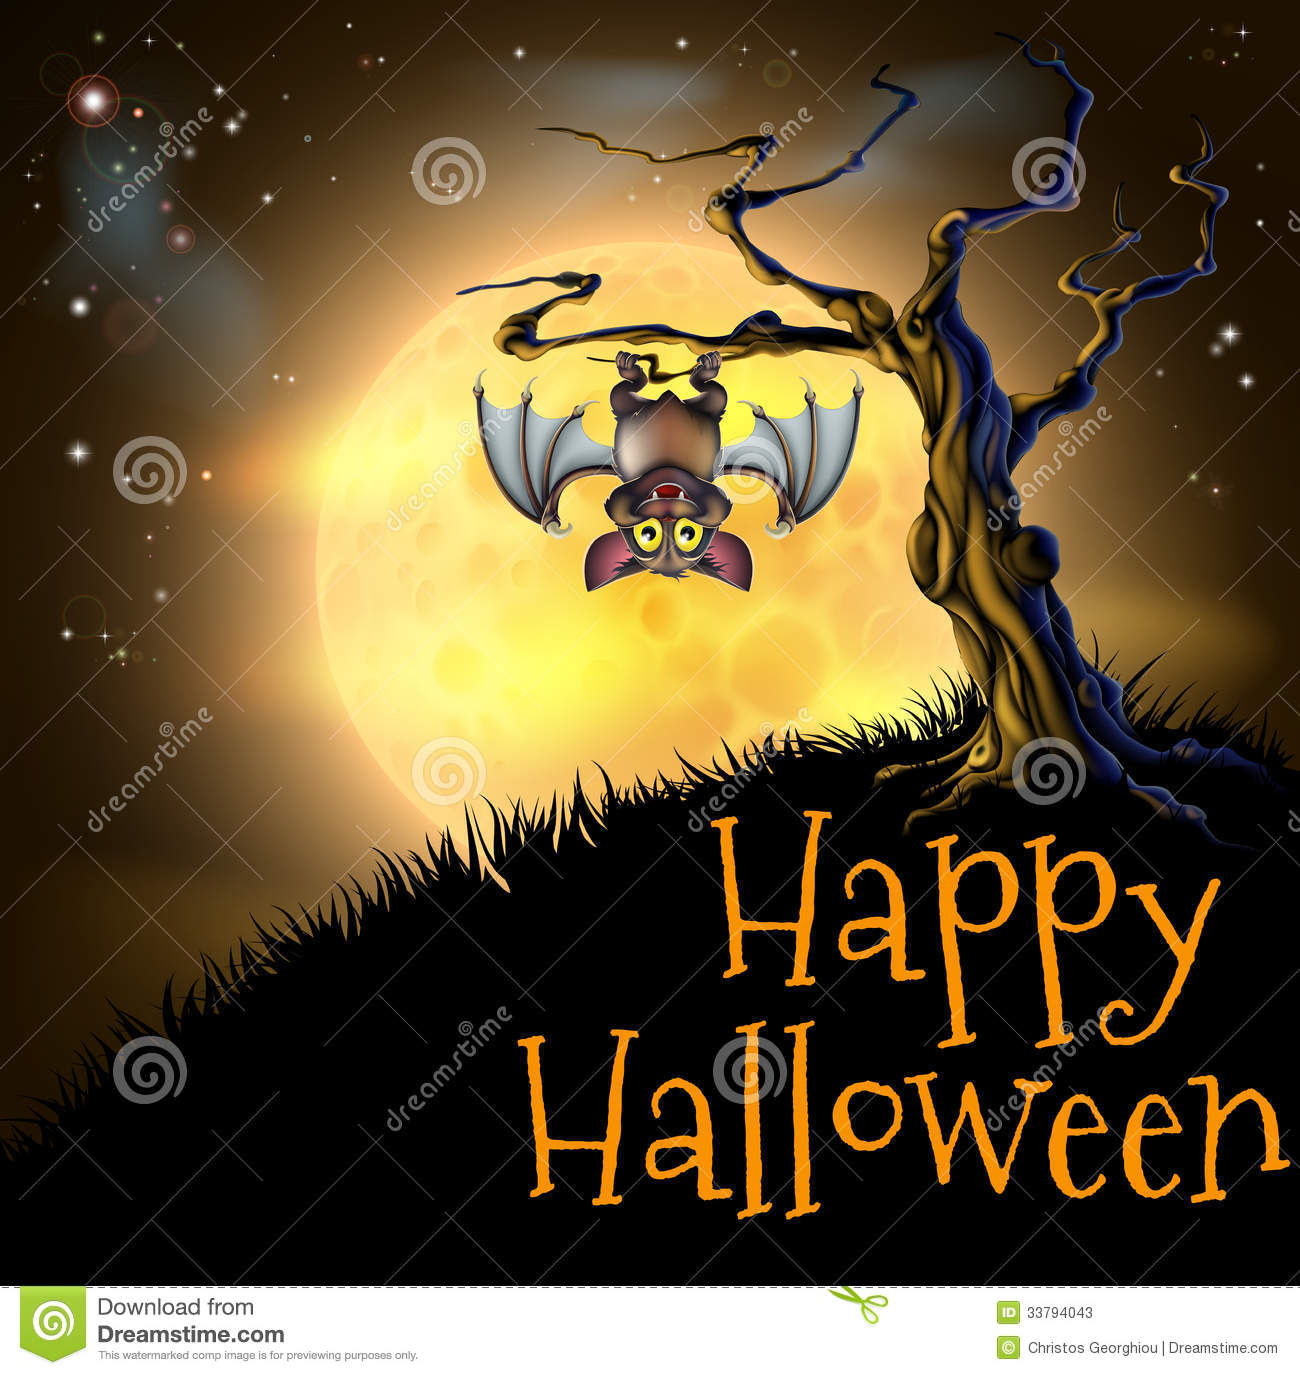 hight resolution of a spooky scary orange halloween background scene with vampire bat hanging from a spooky tree with a full moon in the background